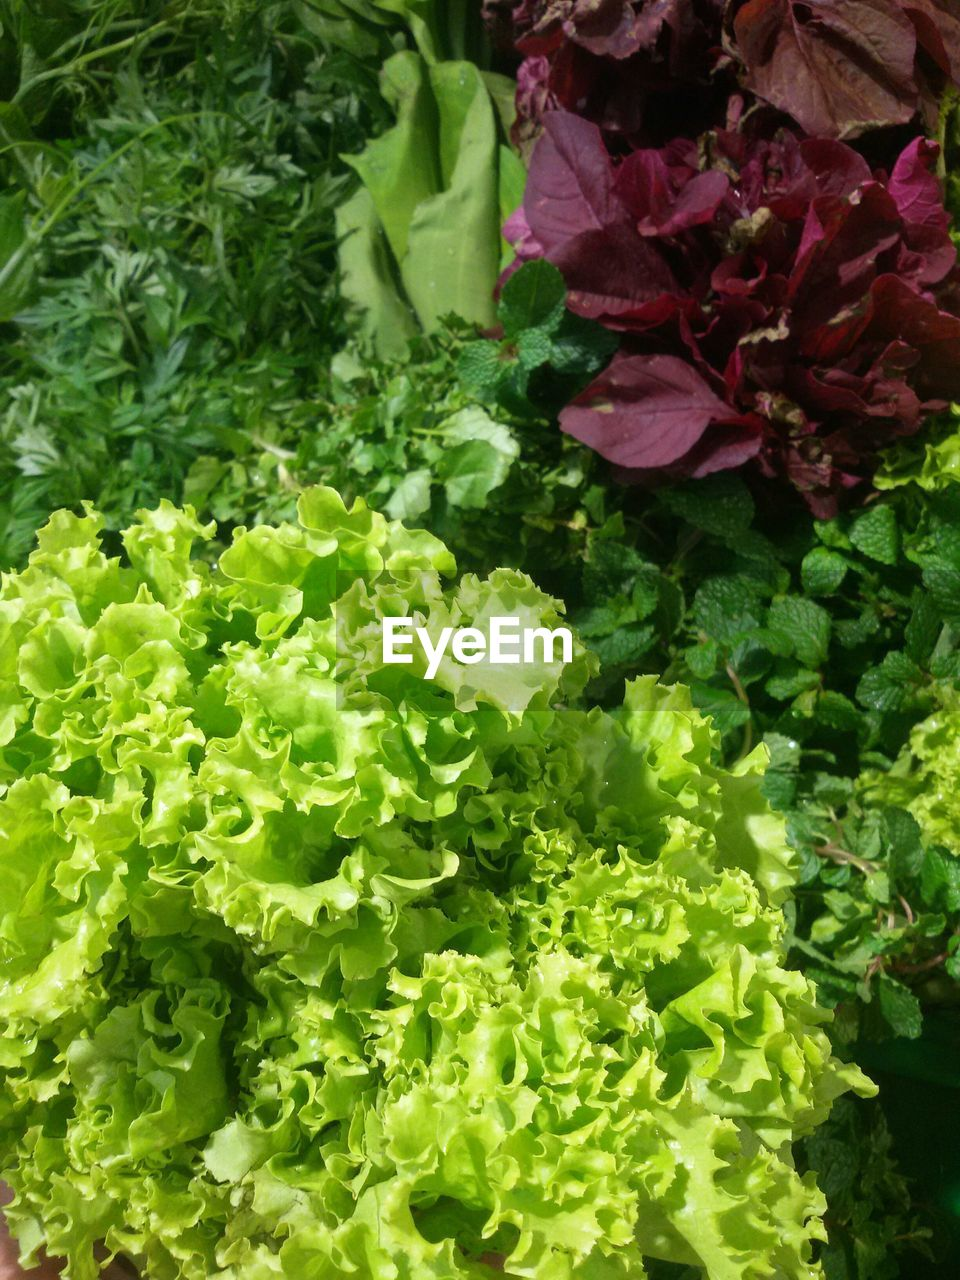 vegetable, freshness, green color, healthy eating, food and drink, food, lettuce, high angle view, no people, leaf, backgrounds, flower, growth, full frame, close-up, day, outdoors, nature, beauty in nature, fragility, flower head